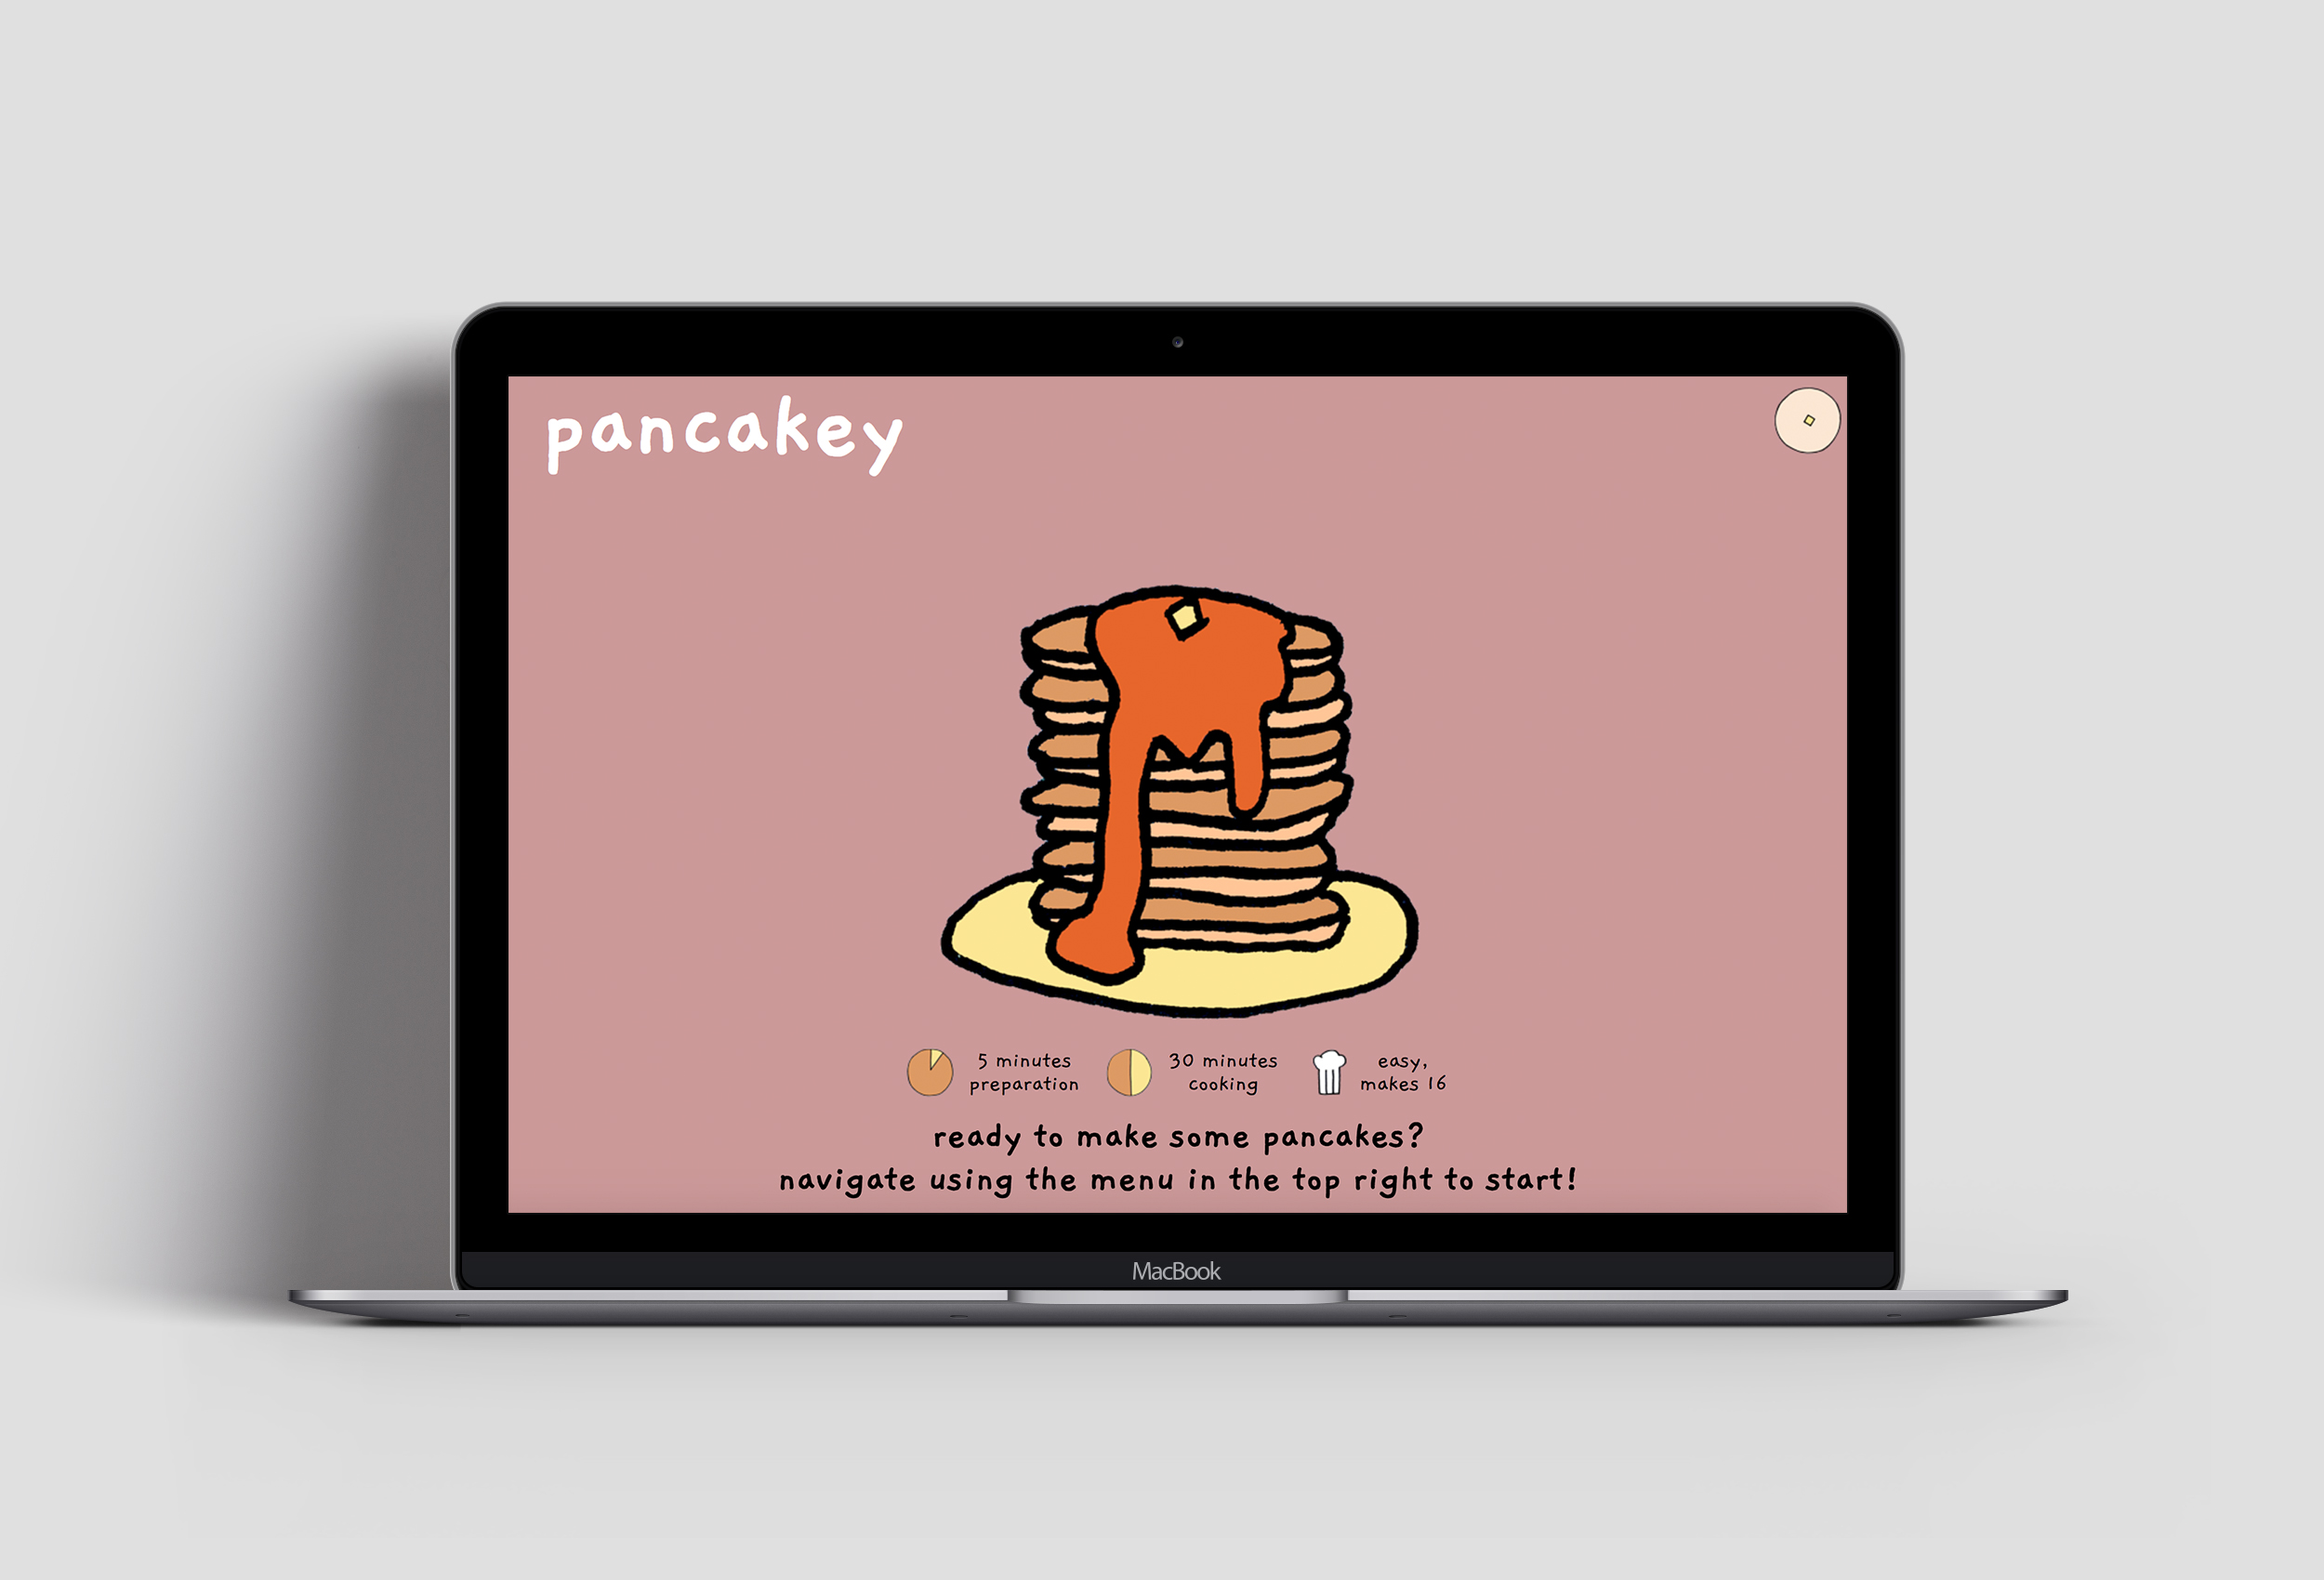 pancakey mock up.jpg